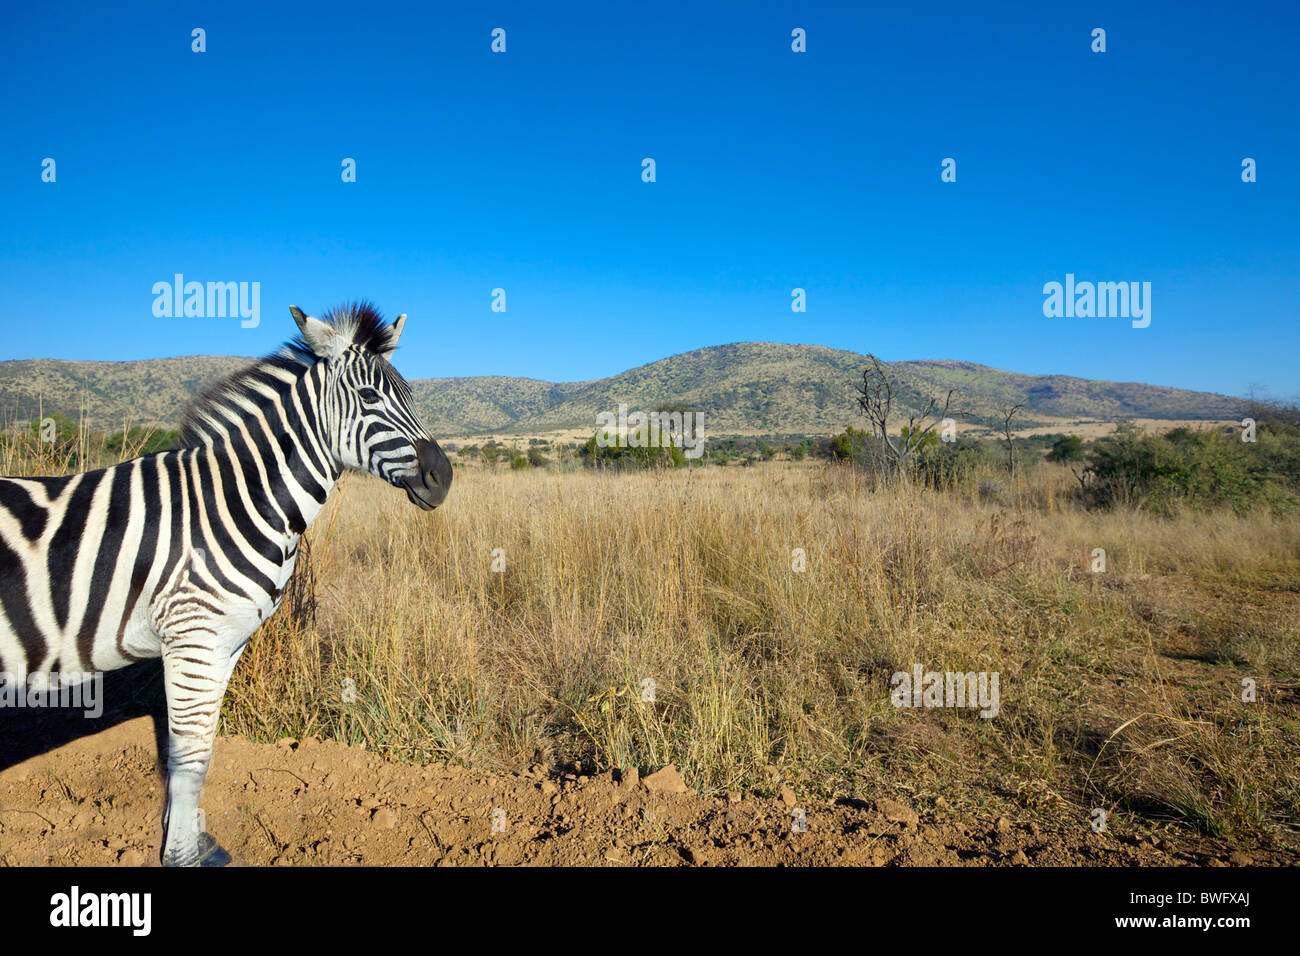 Zebra in open plain, Pilansberg National Park, South Africa - Stock Image